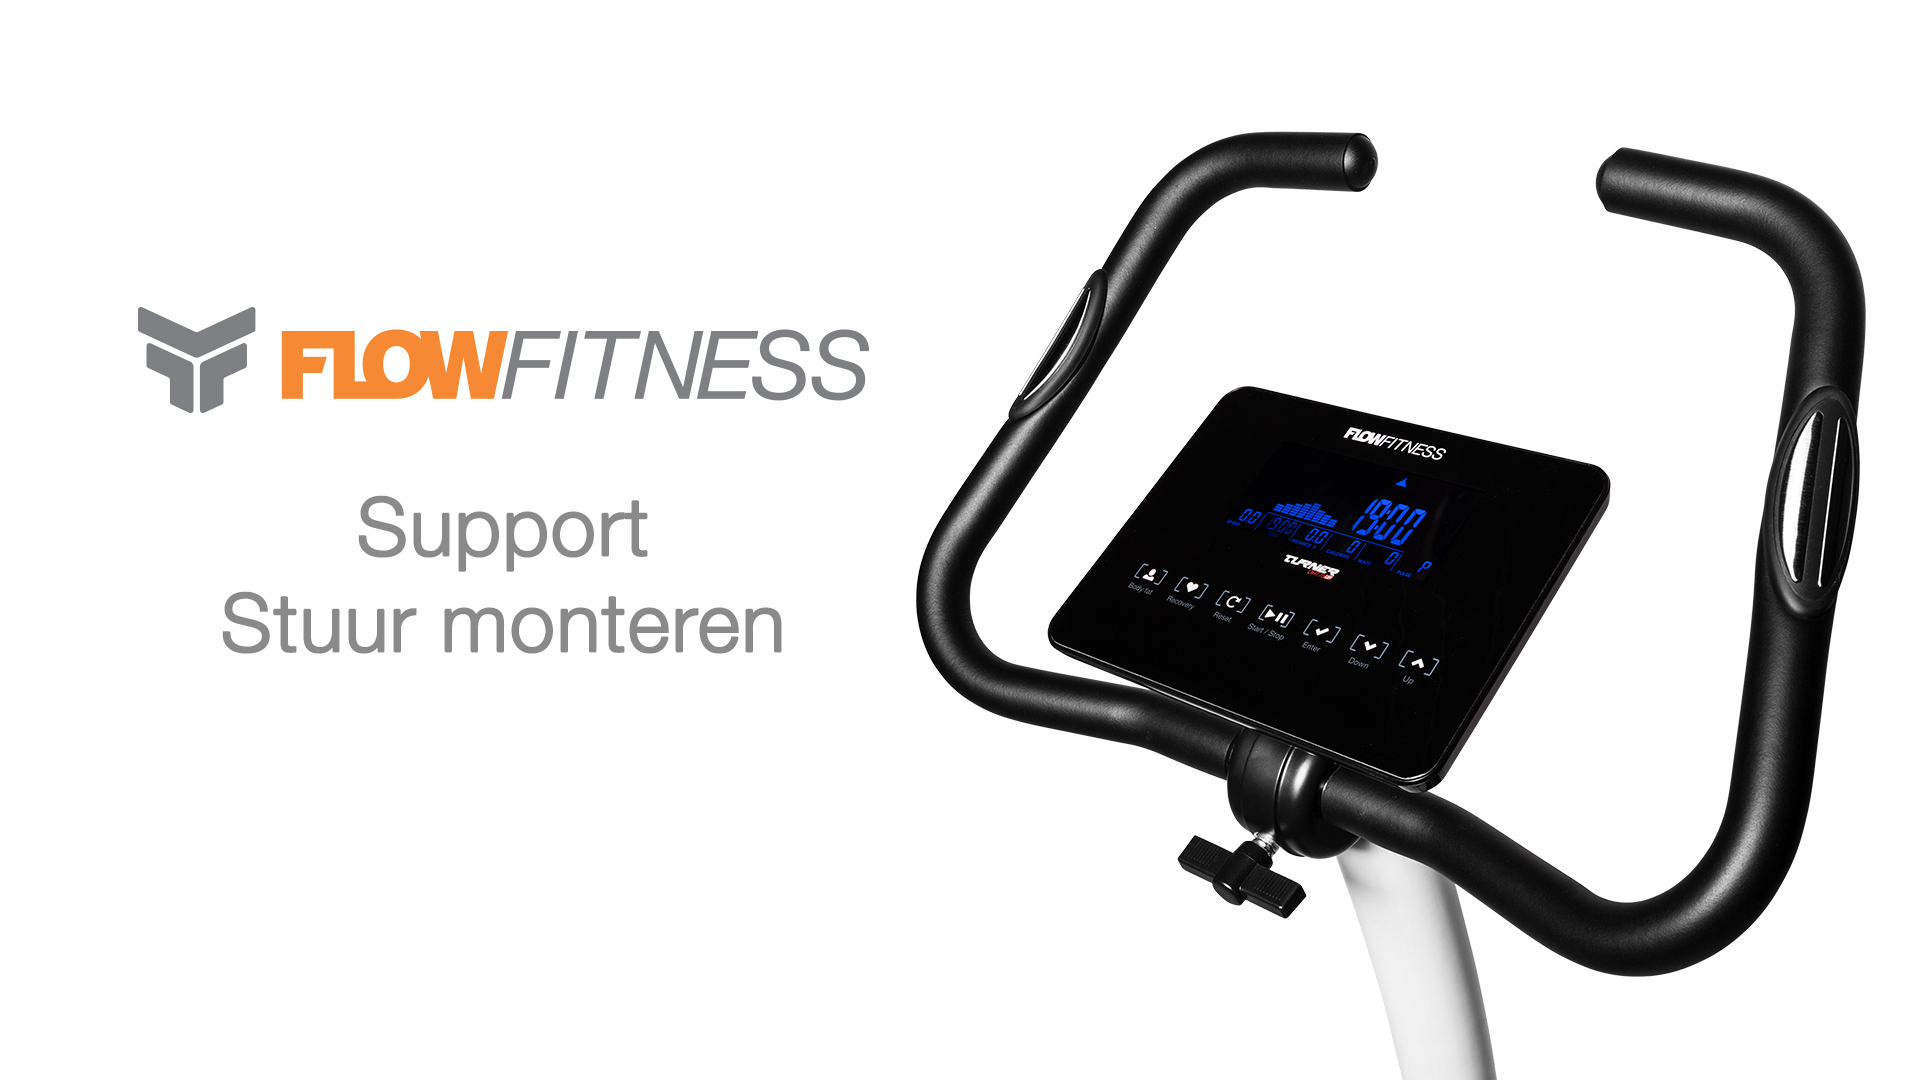 Hometrainer stuur monteren instructie video